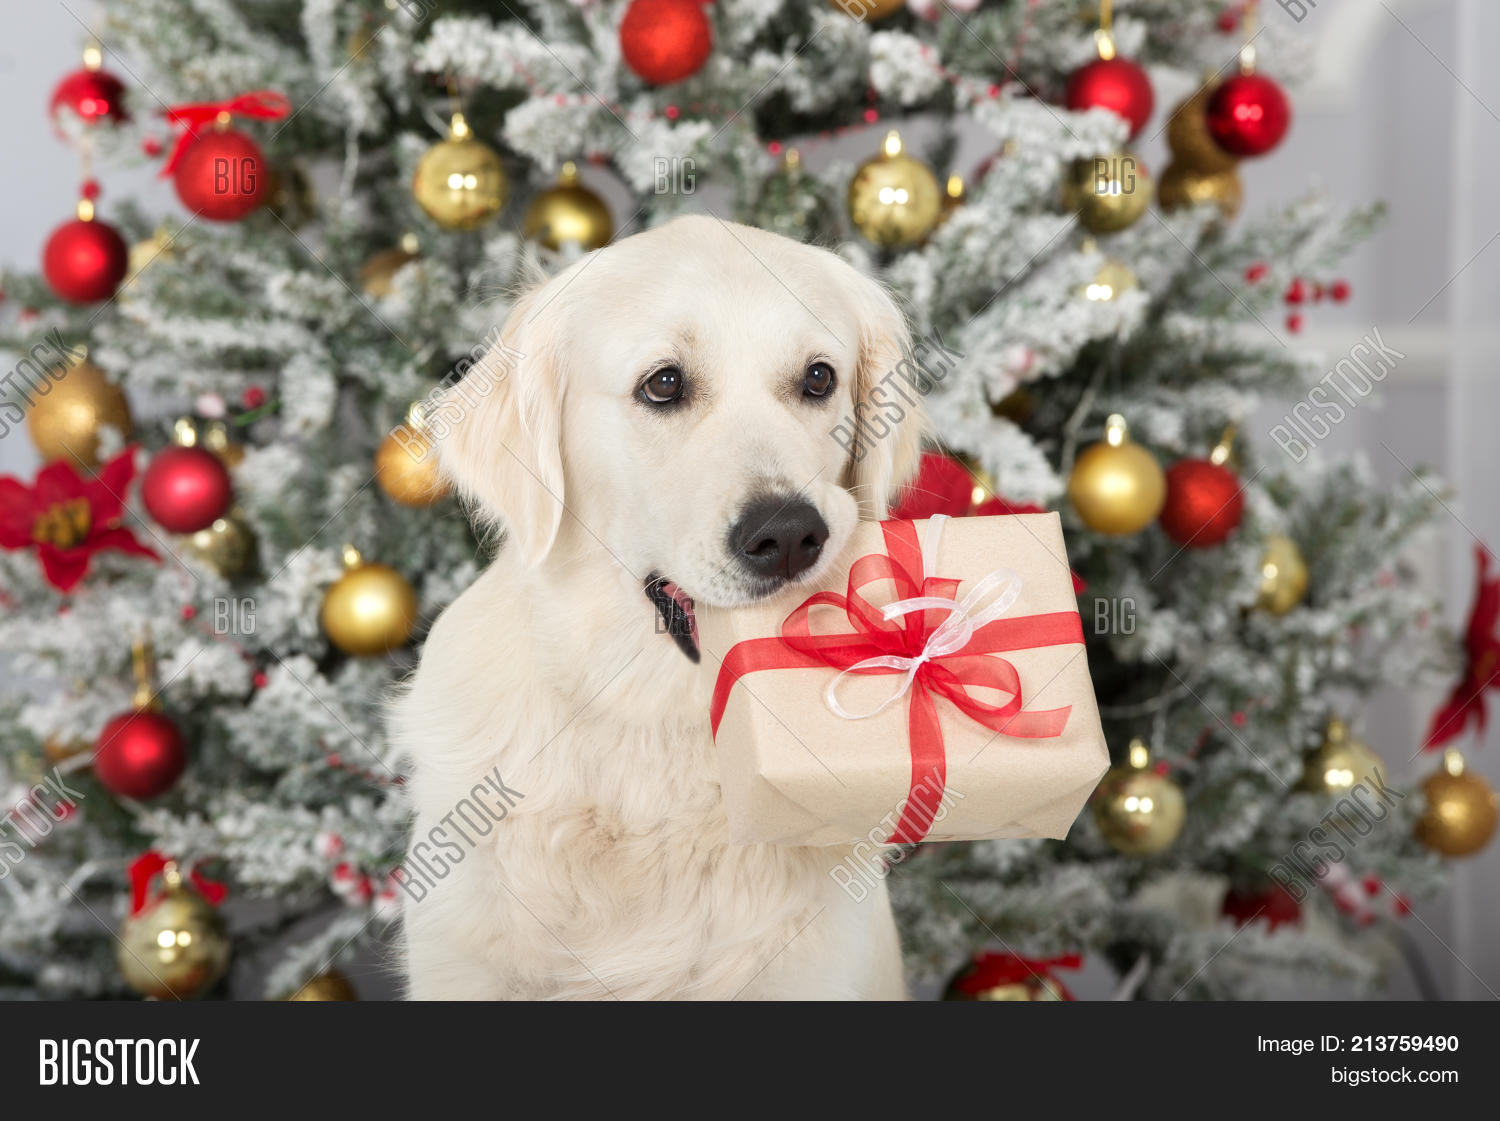 animal,background,box,celebration,cheerful,christmas,cute,december,dog,doggy,domestic,funny,fur,gift,giving,golden,happiness,happy,holding,holiday,humor,looking,new,paper,pedigreed,pet,portrait,present,red,retriever,ribbon,santa,season,studio,tree,tricks,white,winter,xmas,year